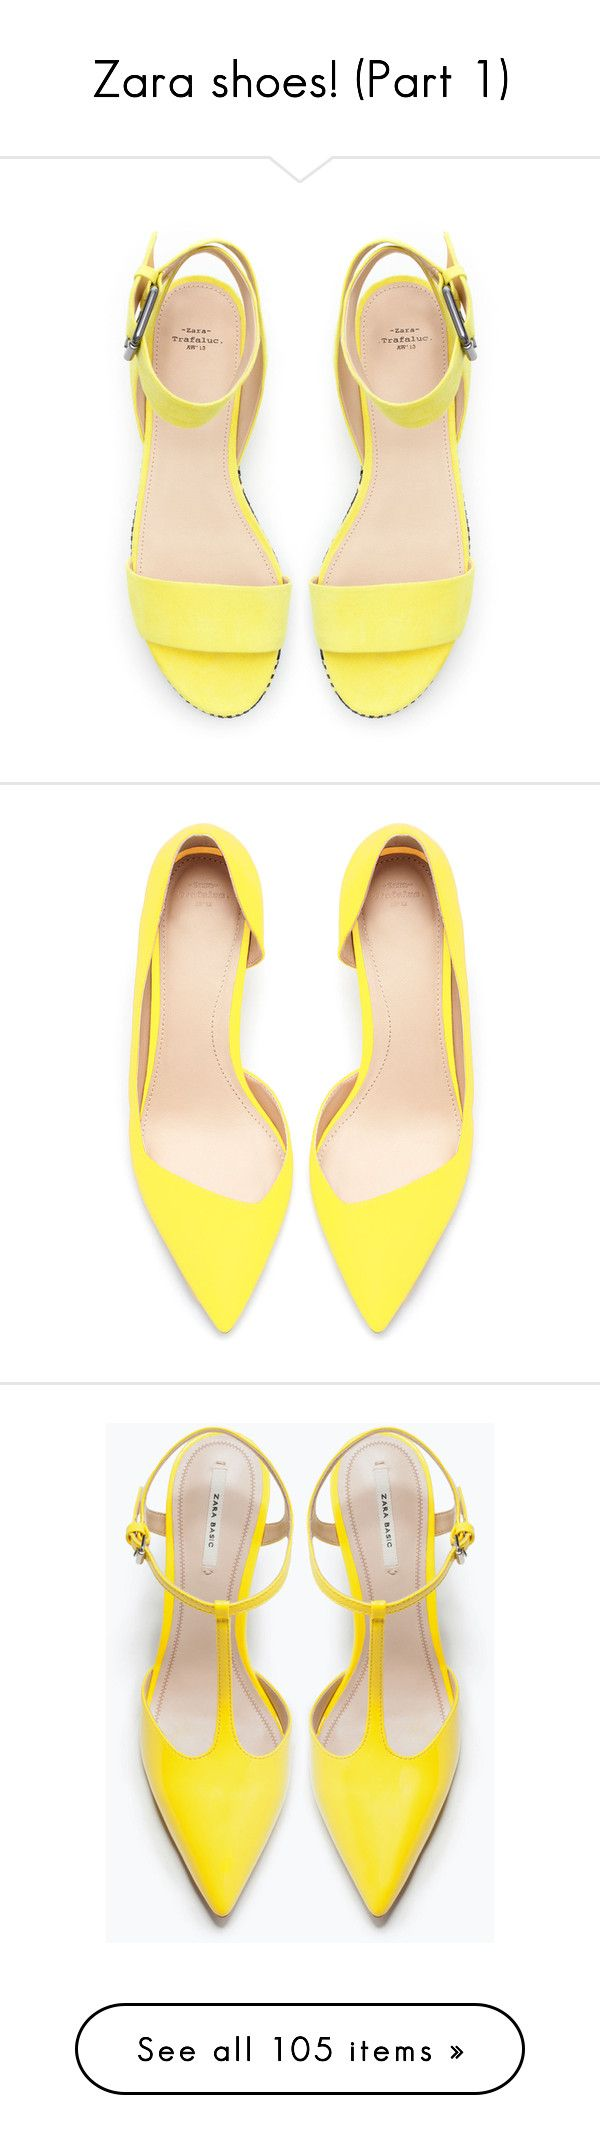 """Zara shoes! (Part 1)"" by blueladybird ❤ liked on Polyvore featuring shoes, sandals, heels, flats, yellow, yellow flats, flat heel shoes, yellow sandals, zara shoes and zara flats"